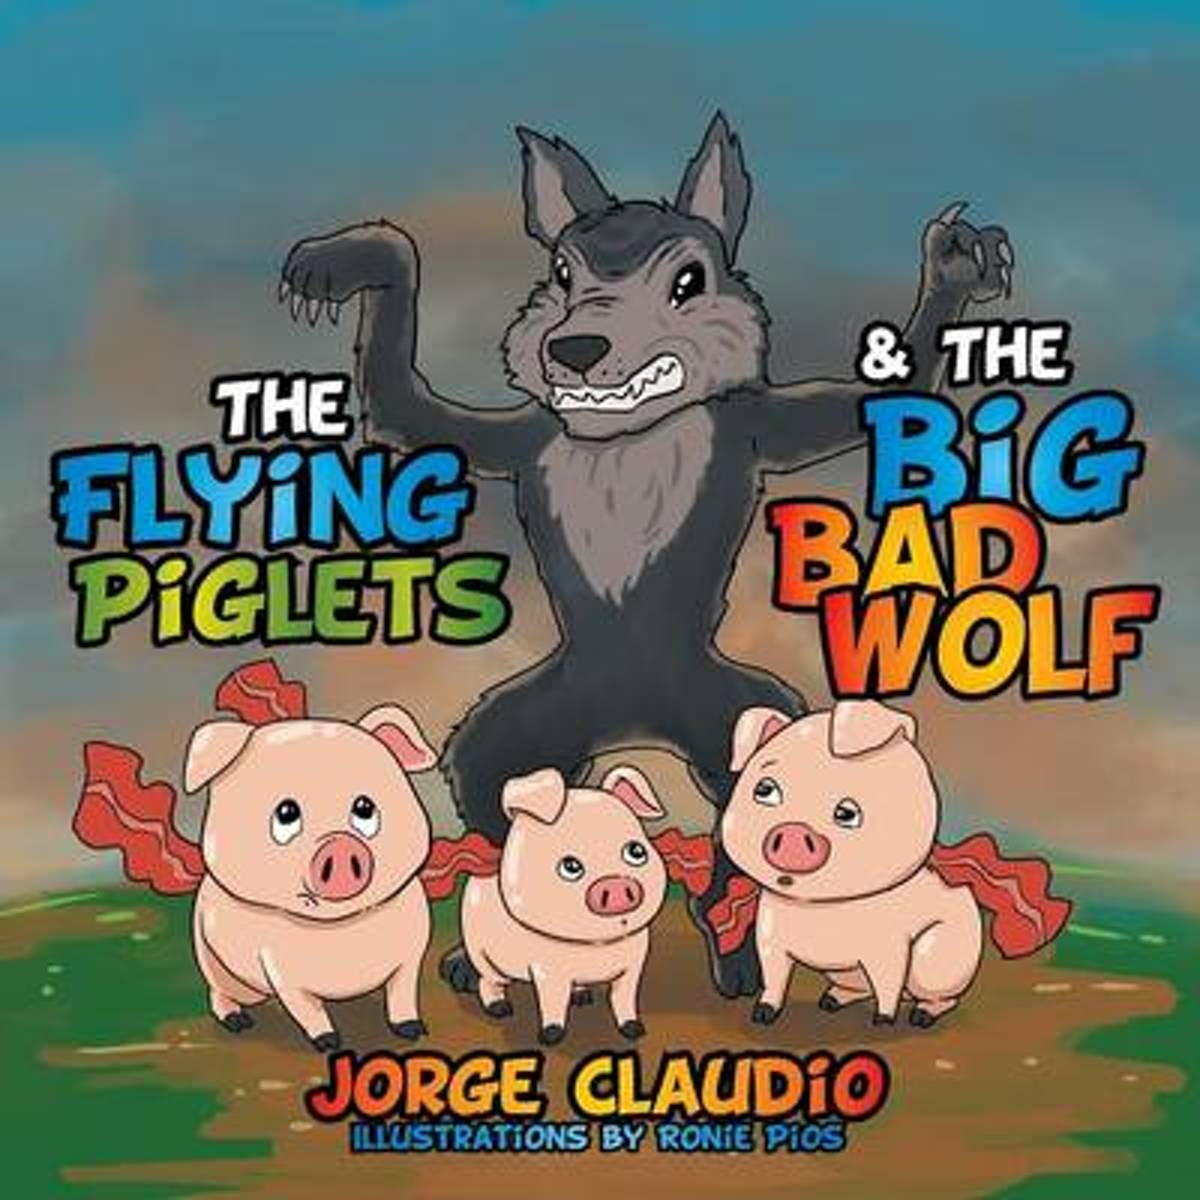 The Flying Piglets & the Big Bad Wolf